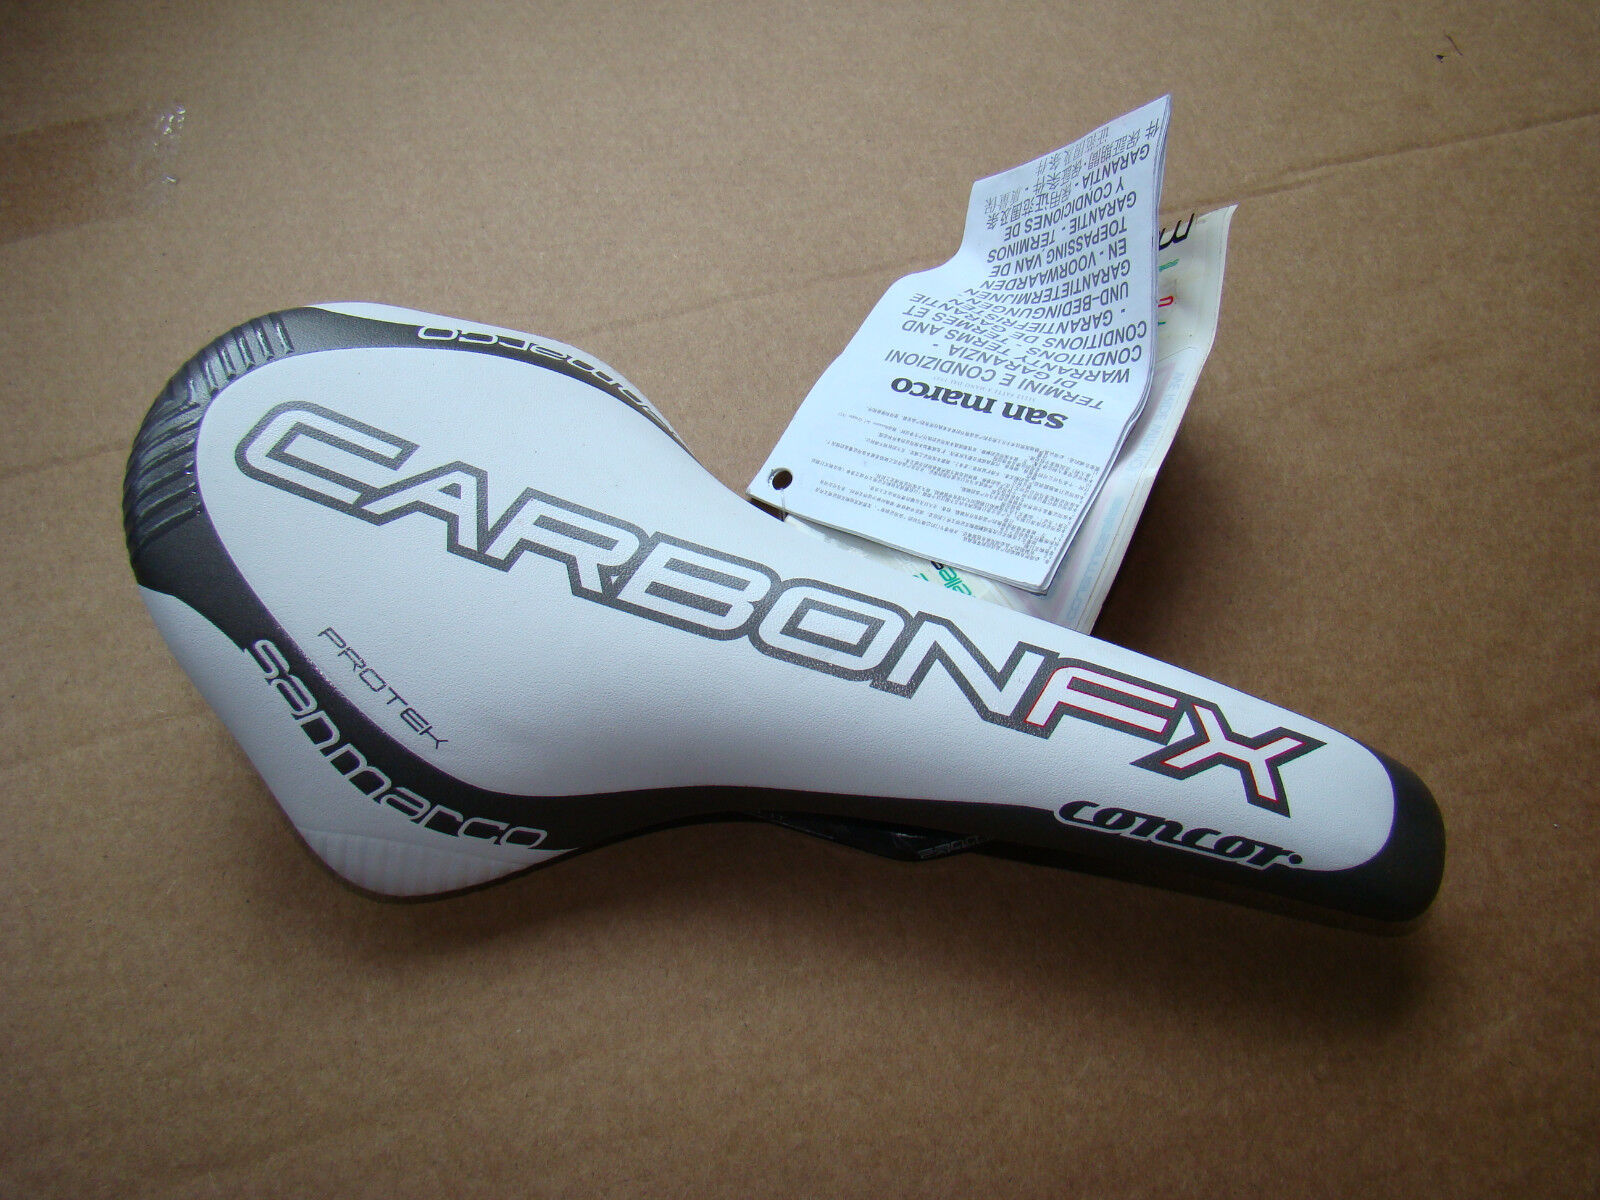 Selle San Marco Concor Carbon FX Prossoek  Bike Bicycle Cycling Saddle